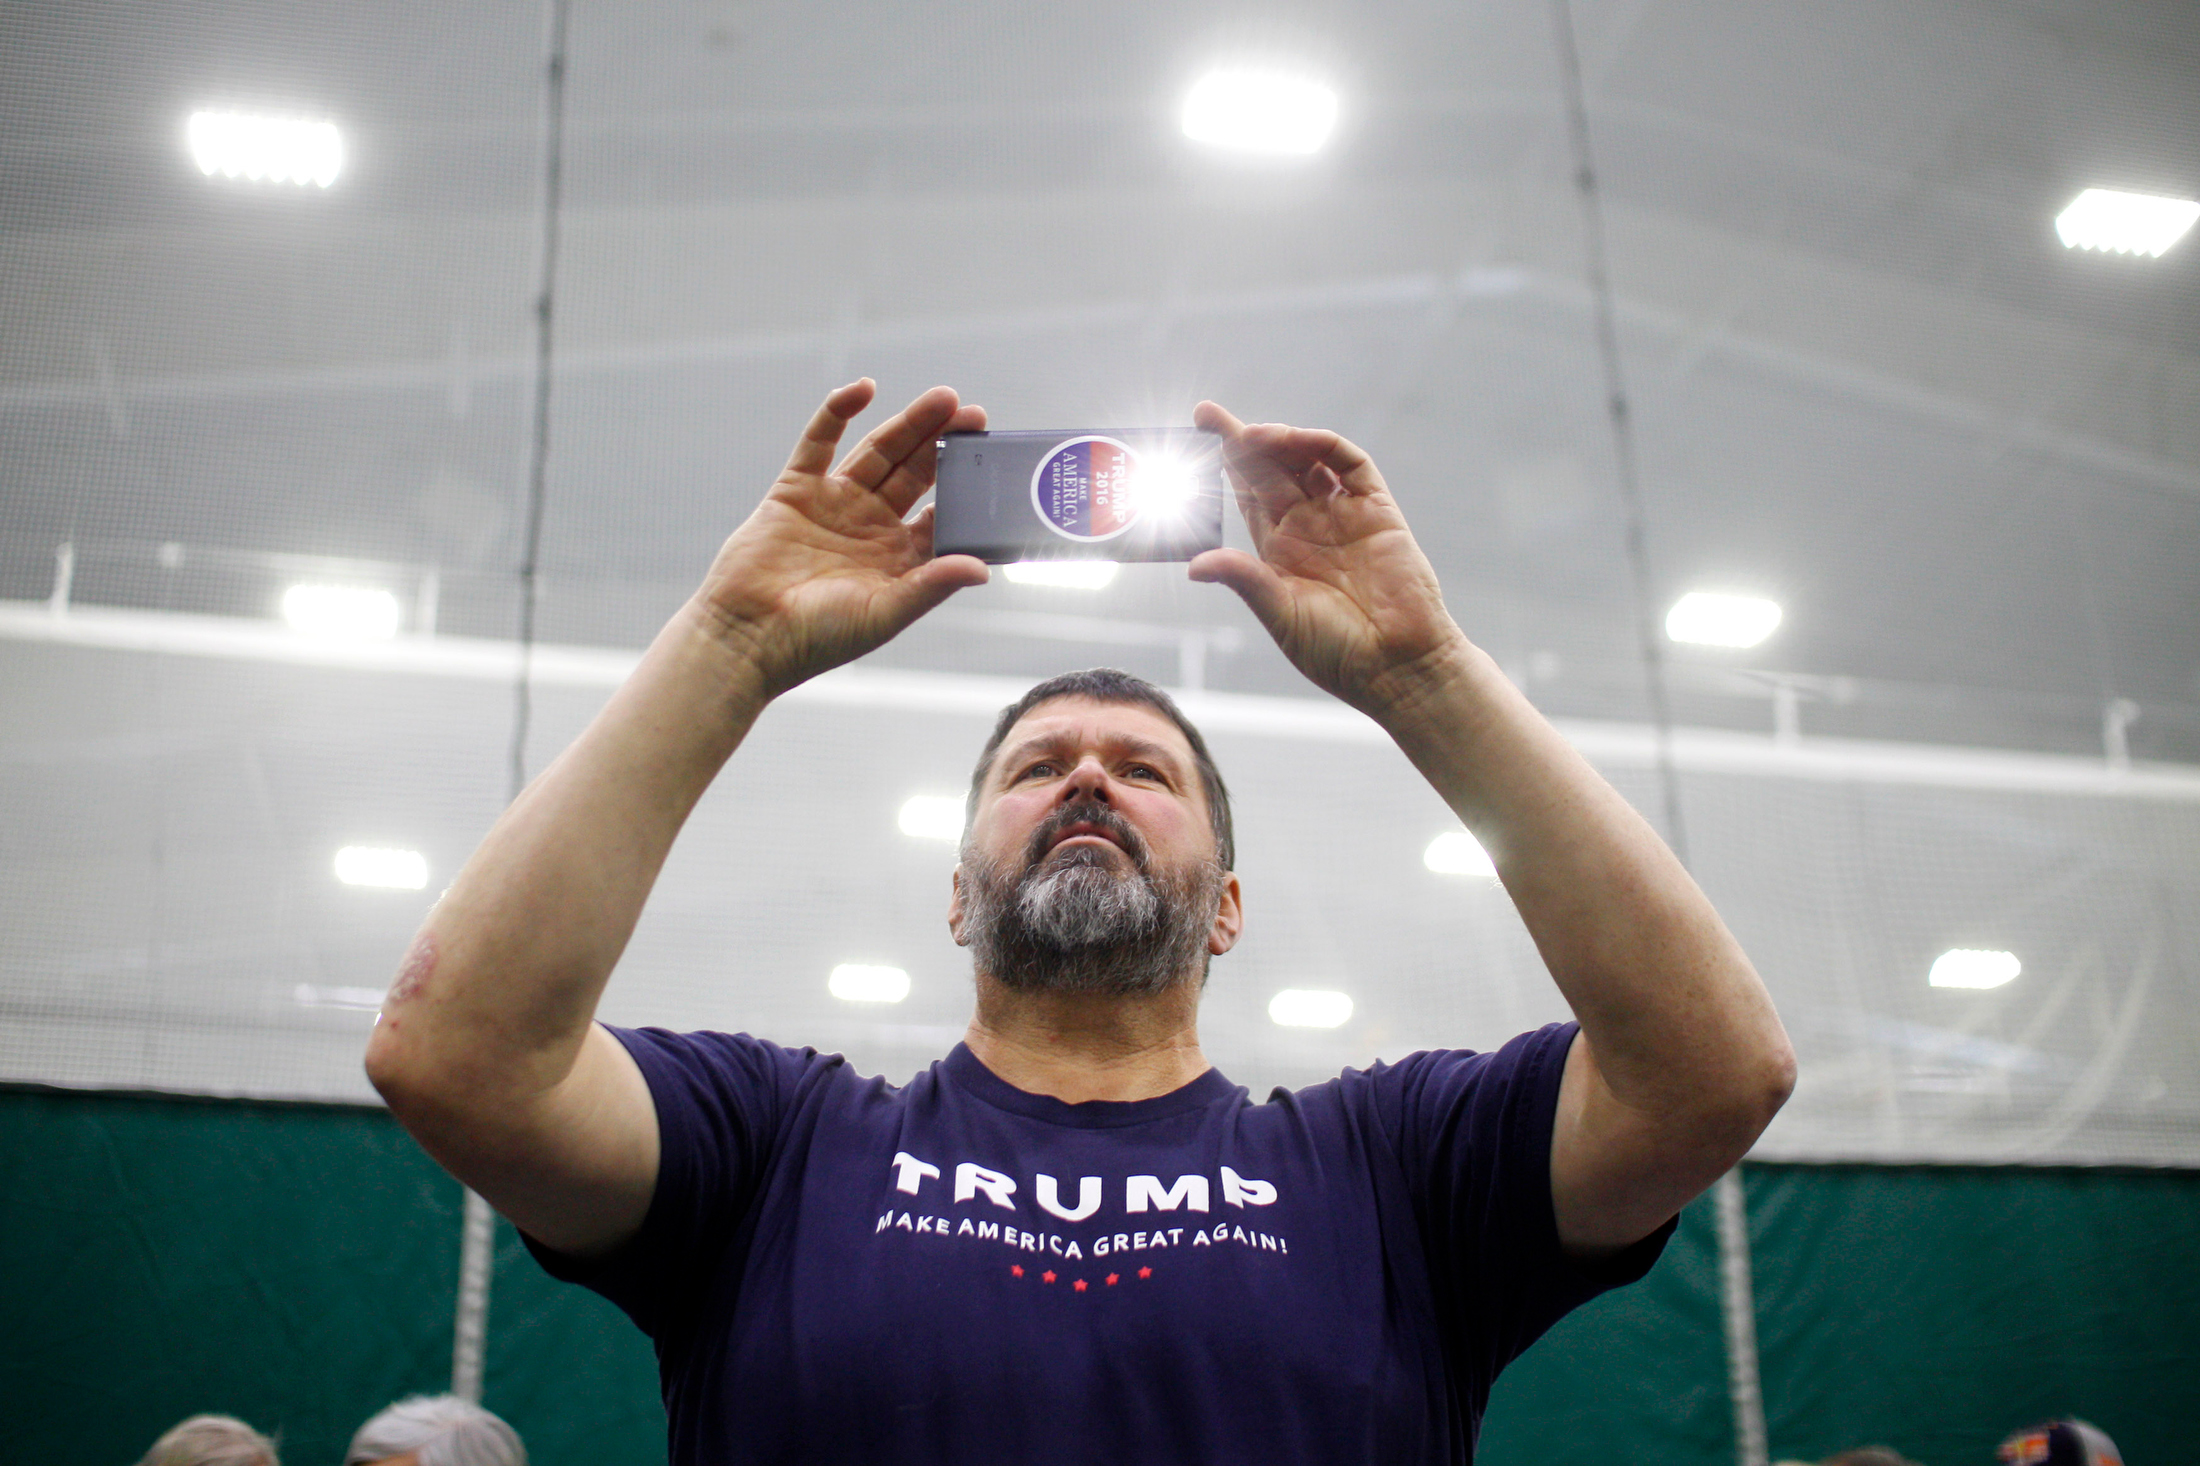 Donald Trump supporter Donald Ostie of Colebrook, New Hampshire takes a photo of the stage prior to a rally for Republican candidate for president Donald Trump at Plymouth State University in Holderness, New Hampshire on February 7, 2016. New Hampshire will hold the first primary in the nation on February 9th.